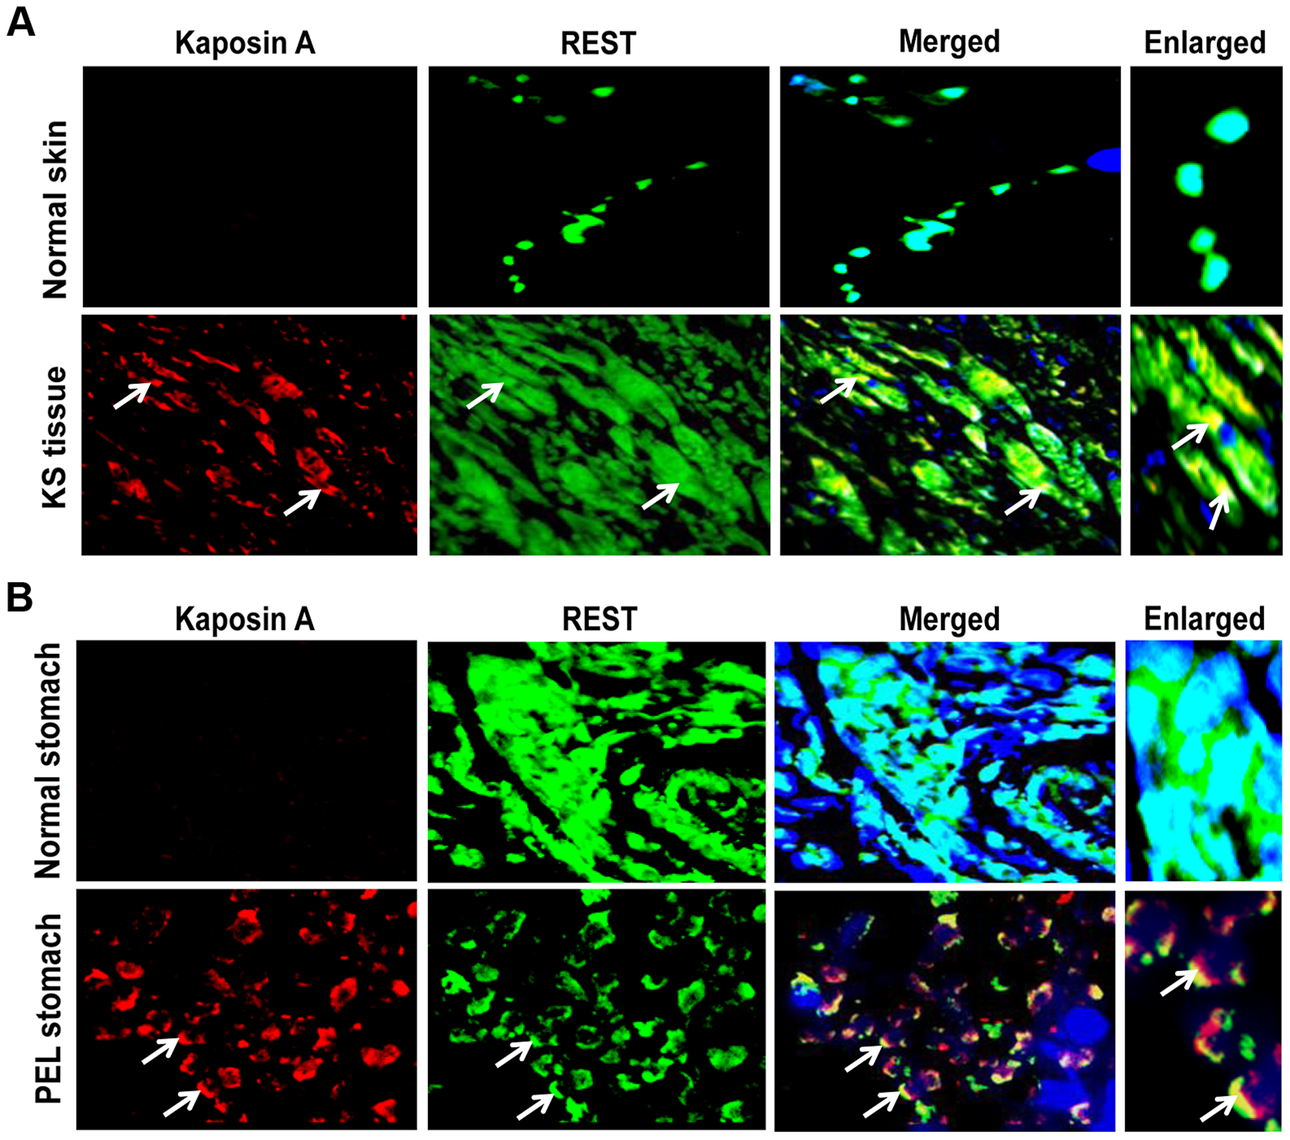 Colocalization of REST and Kaposin in KSHV-infected patient samples.